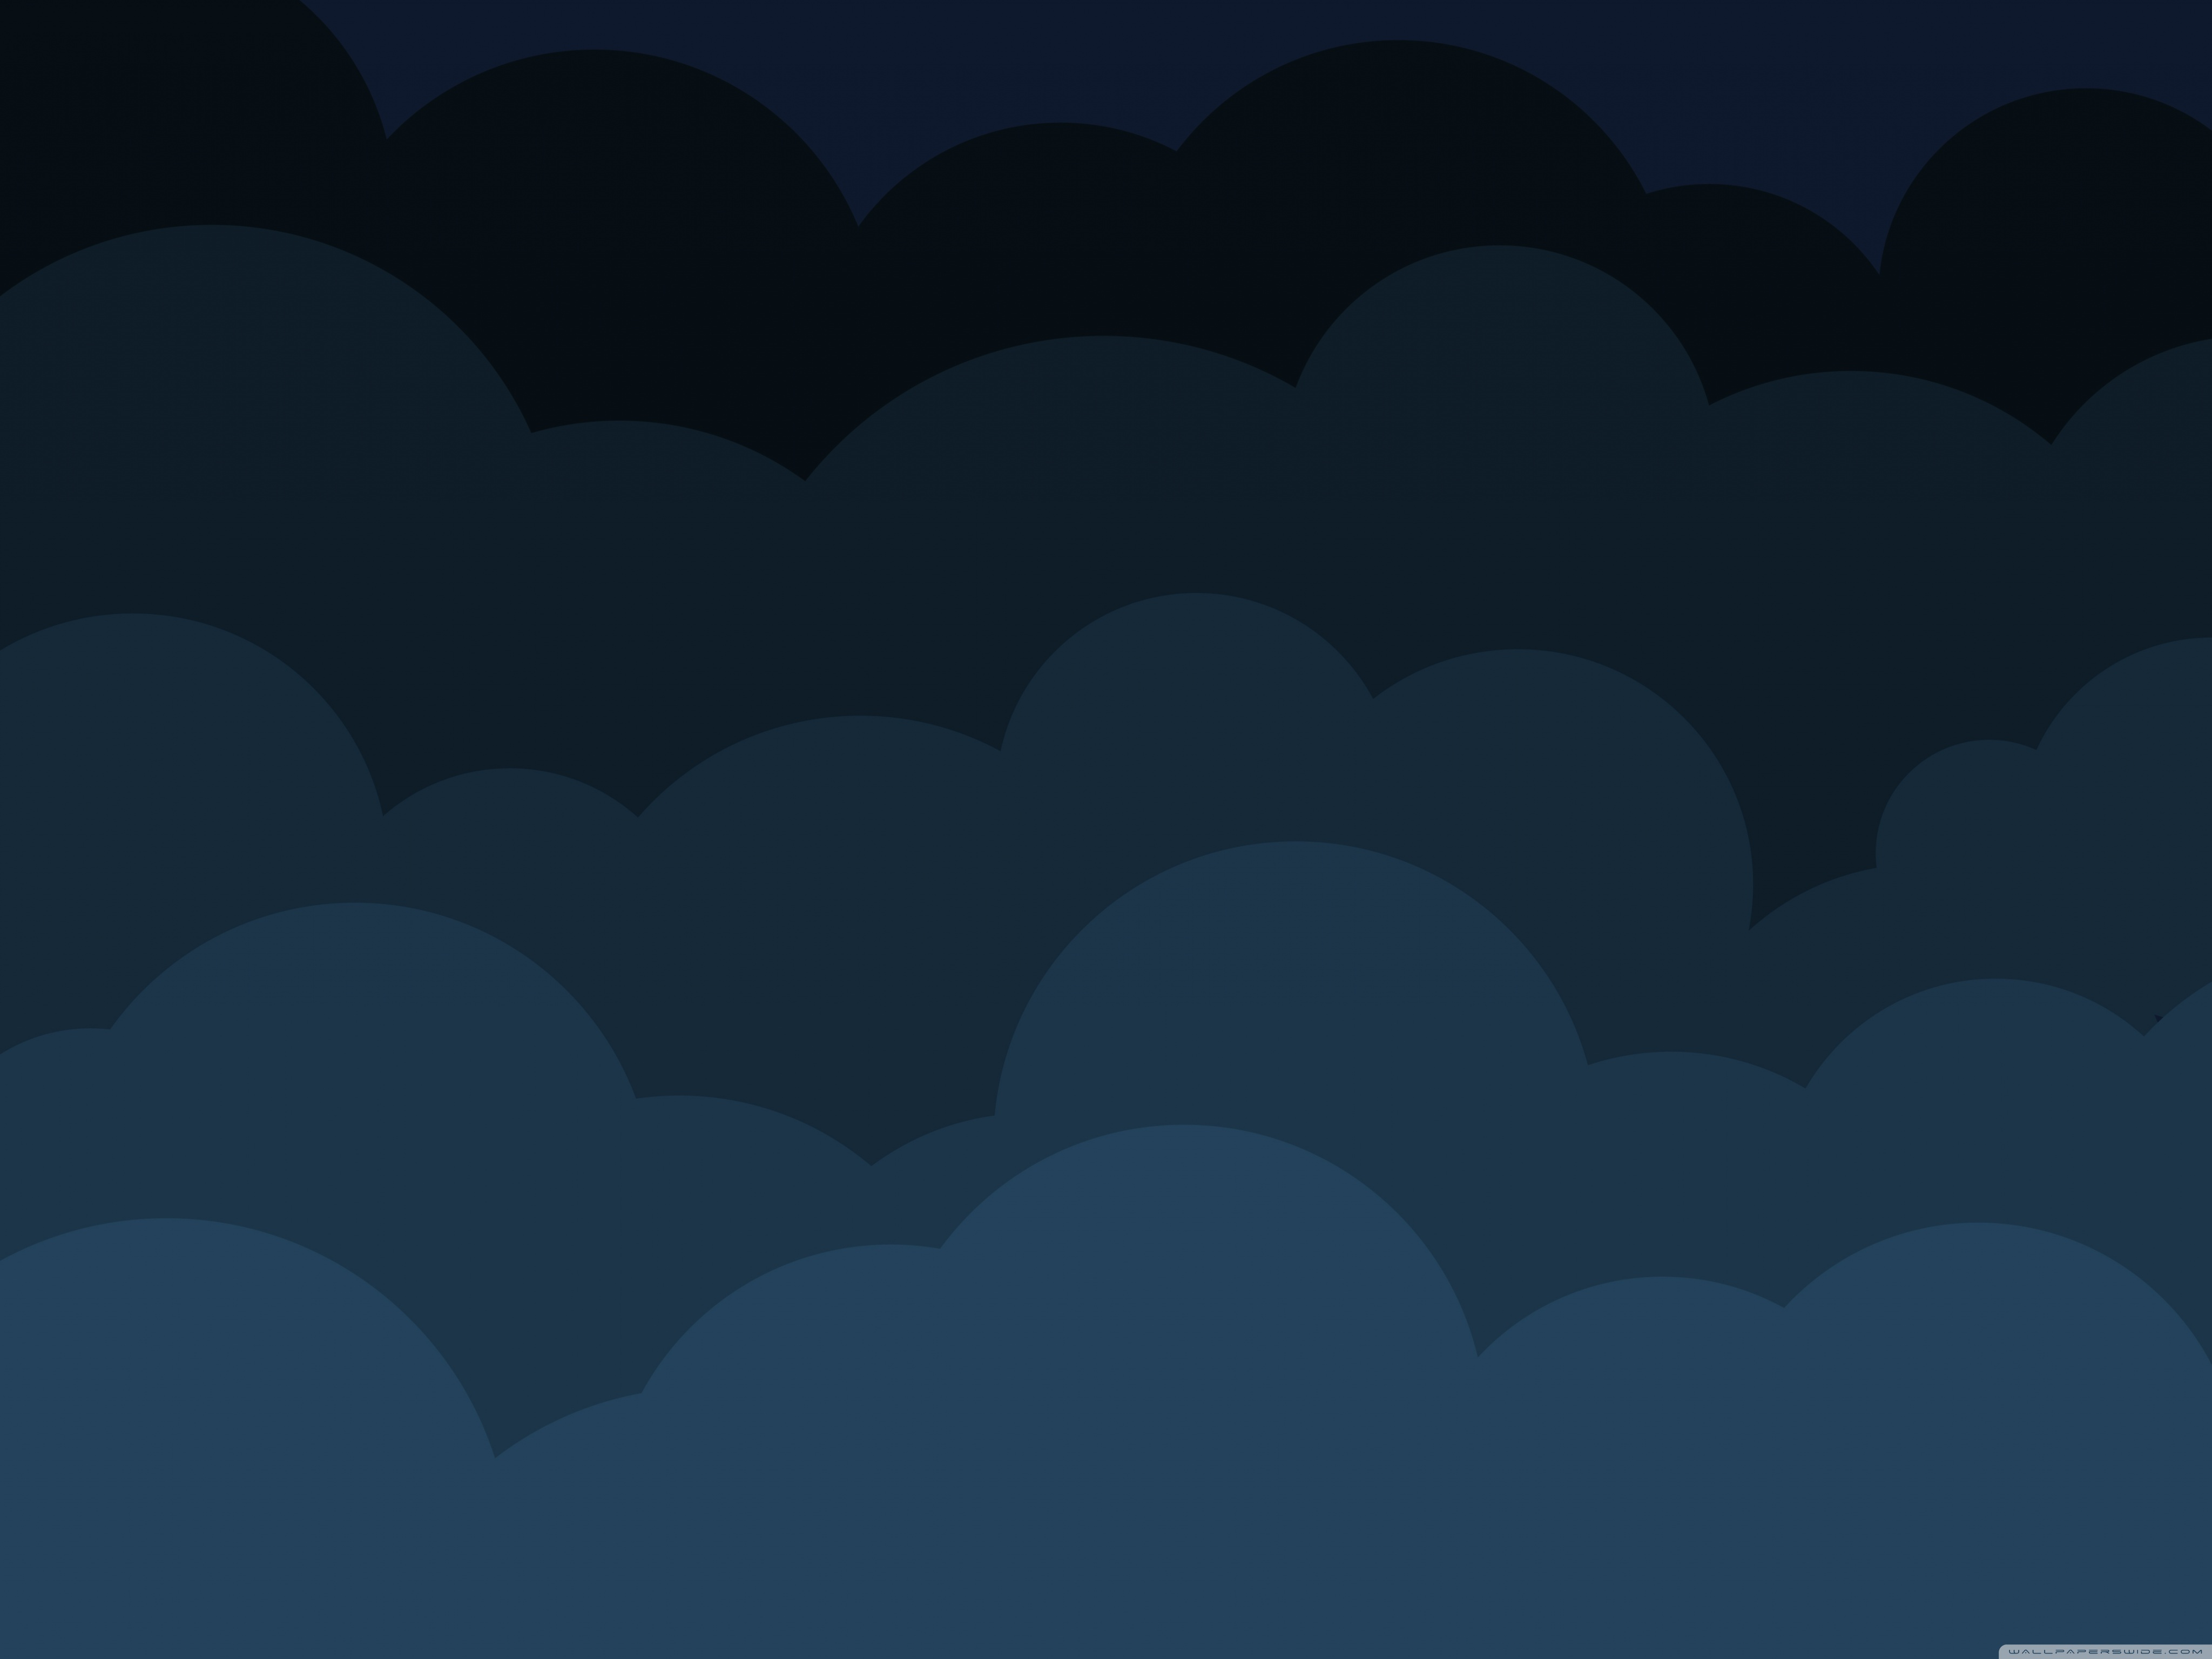 Download Free WallpaperDark Cartoon Clouds